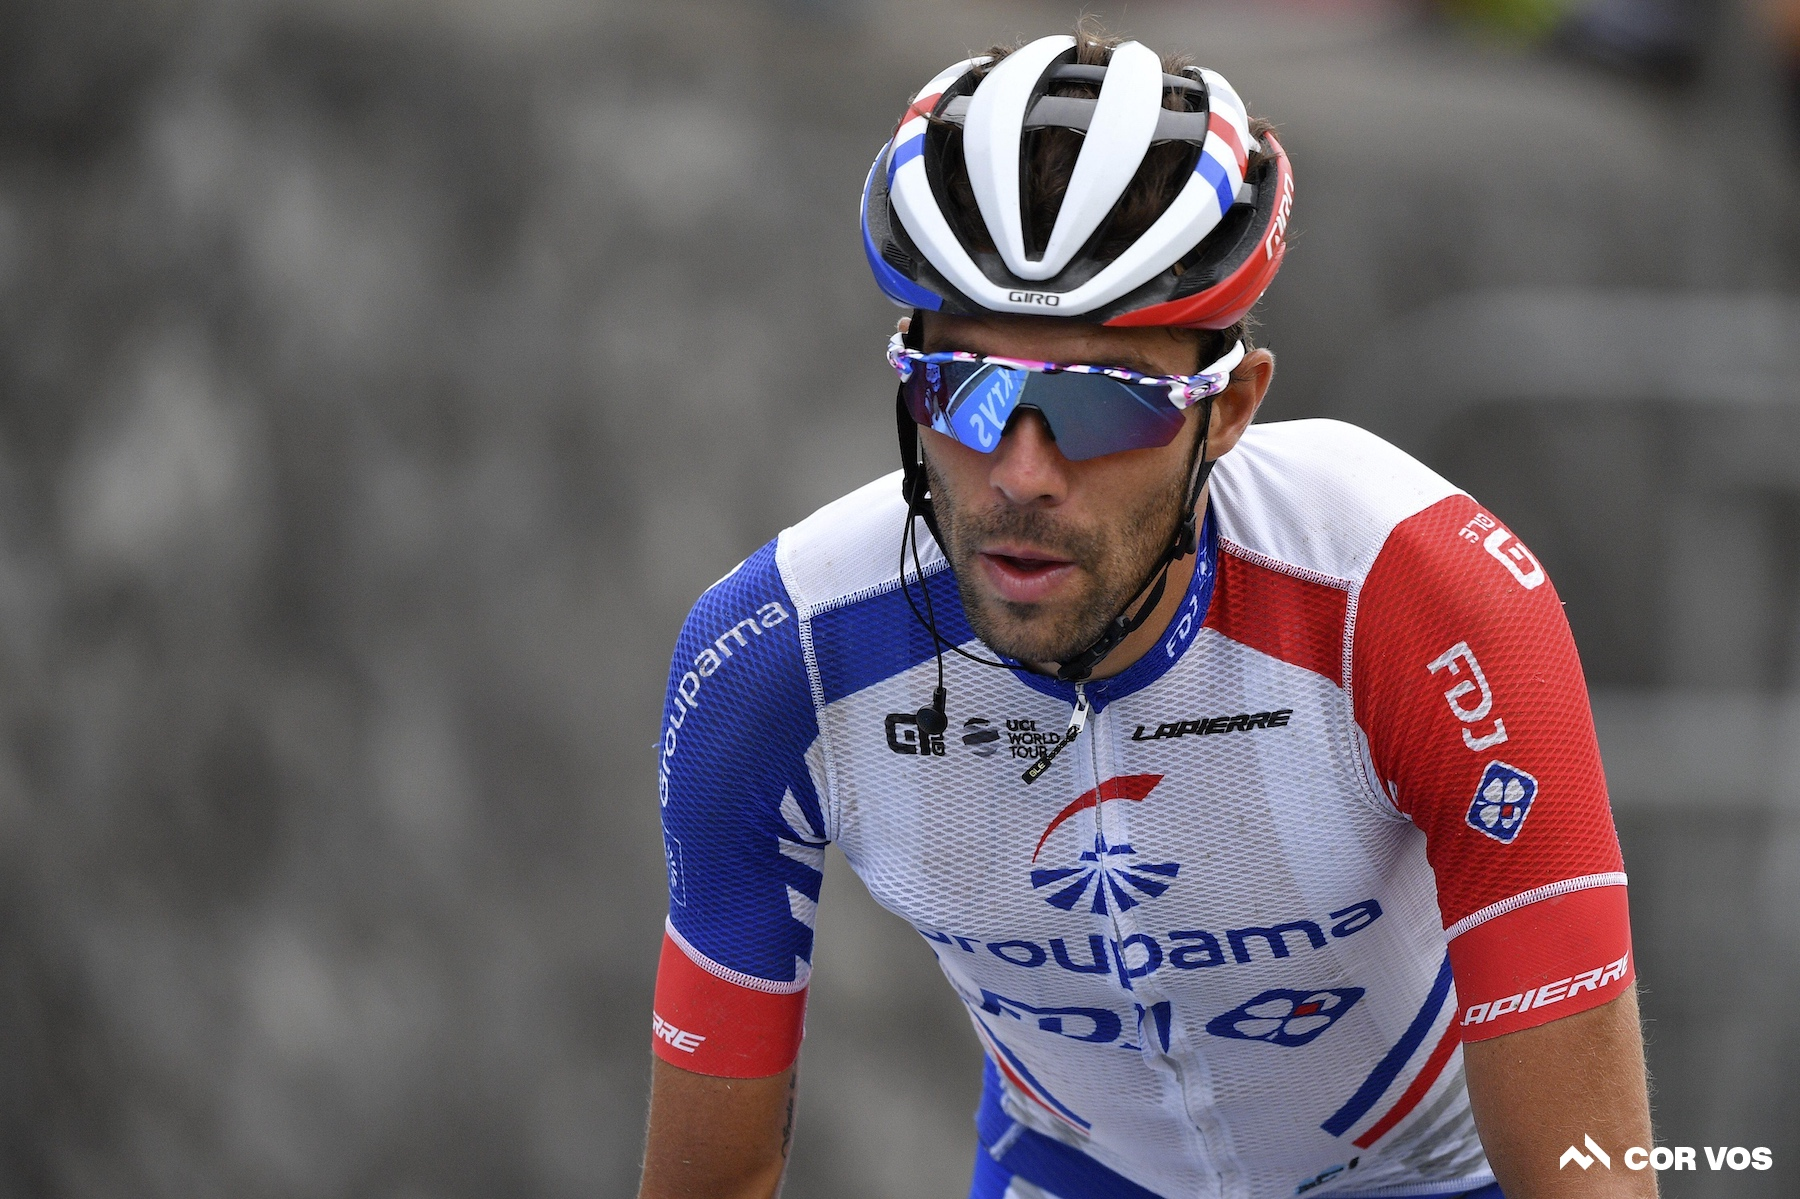 Thibaut Pinot confirms that he will race the Giro and not the Tour in 2021